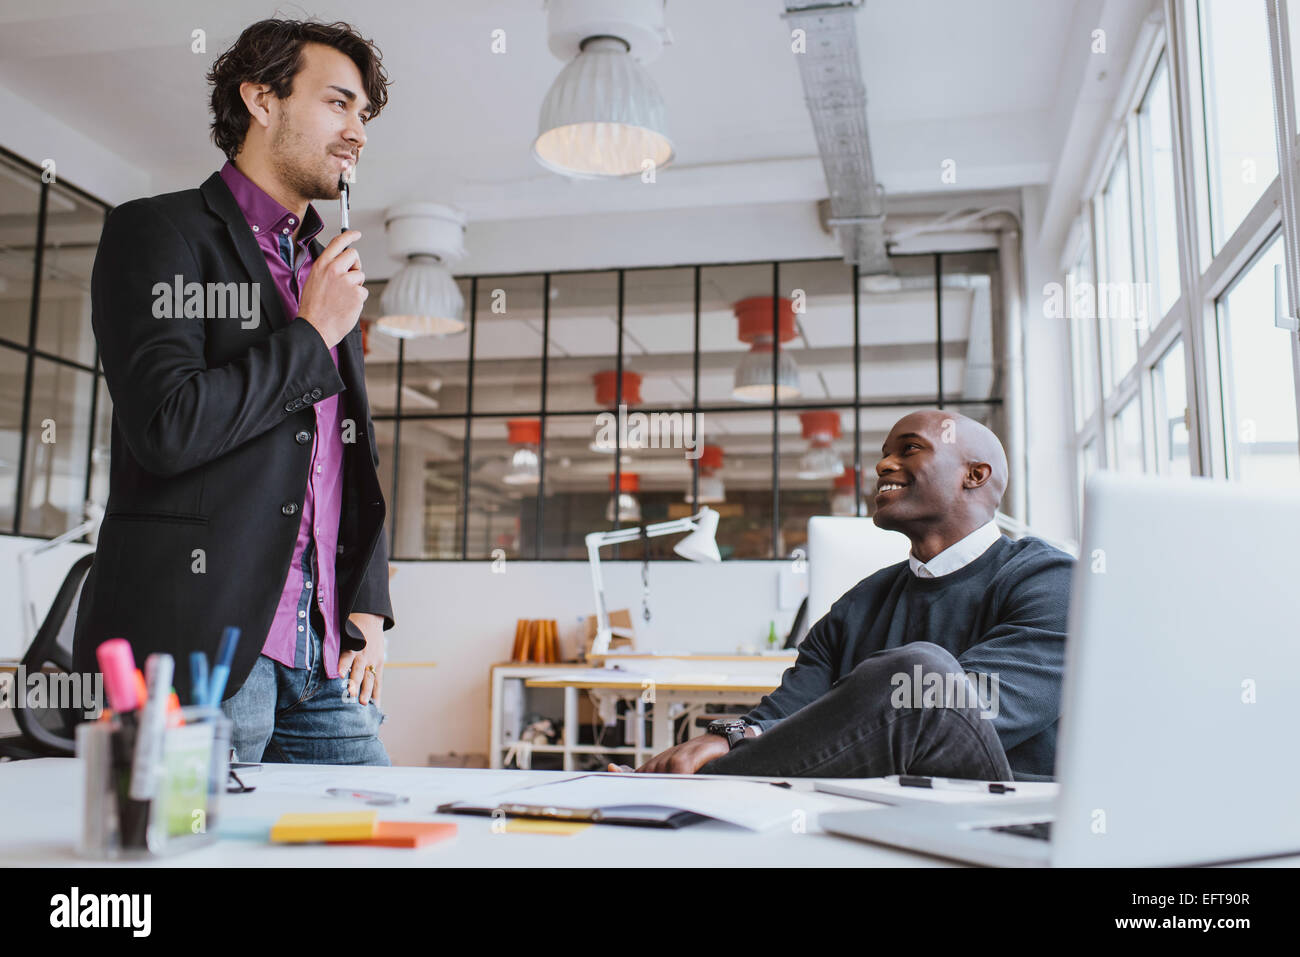 Two young office workers discussing work in office. Office manager with colleague. - Stock Image